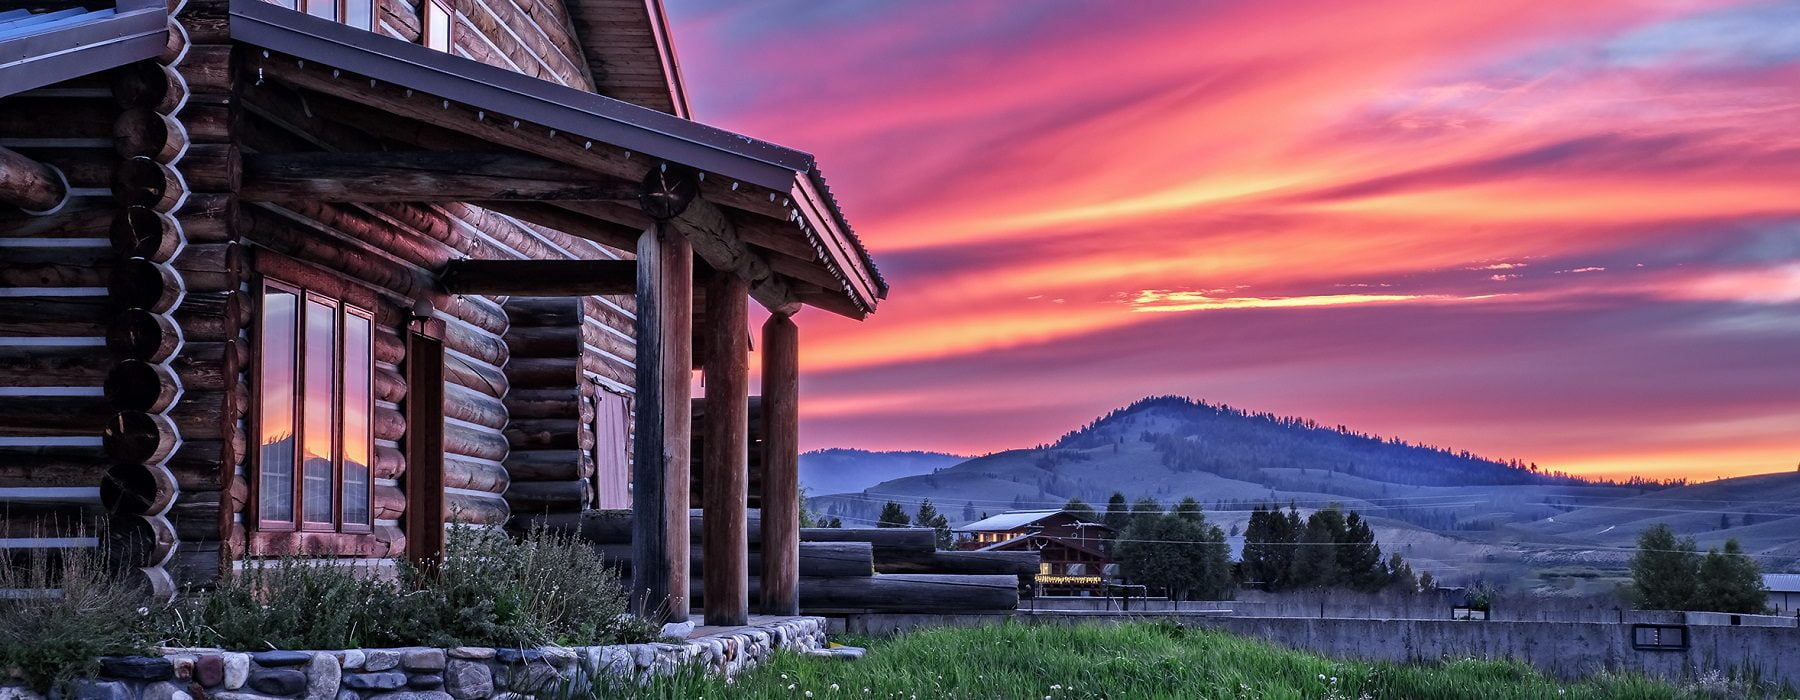 sunset over a Triangle C Cabins rental house